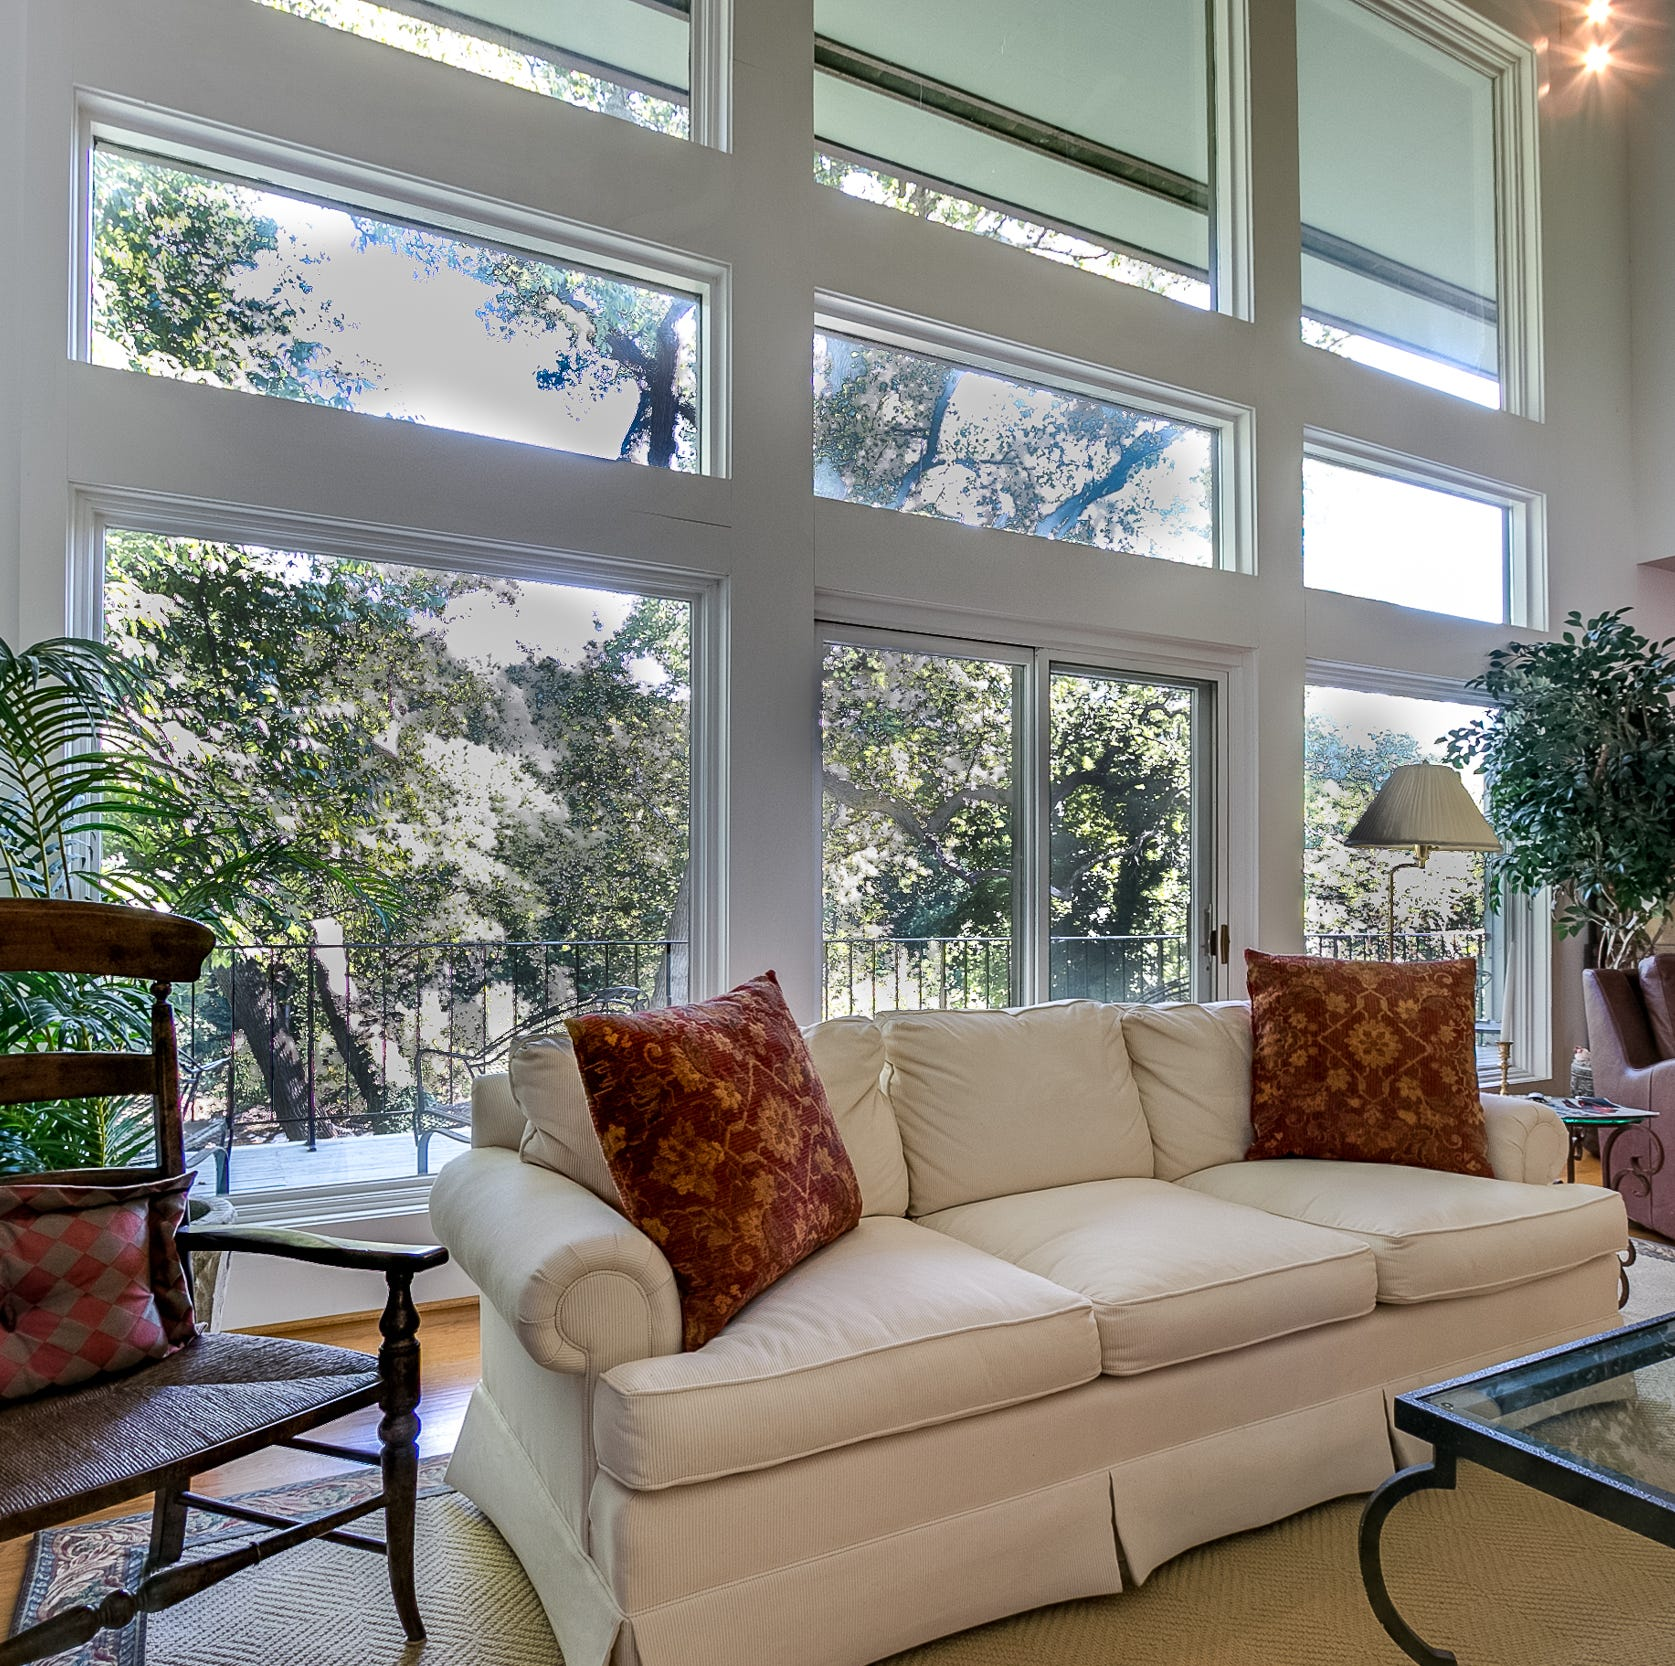 Riverside Wilmington condo offers space, never-ending views